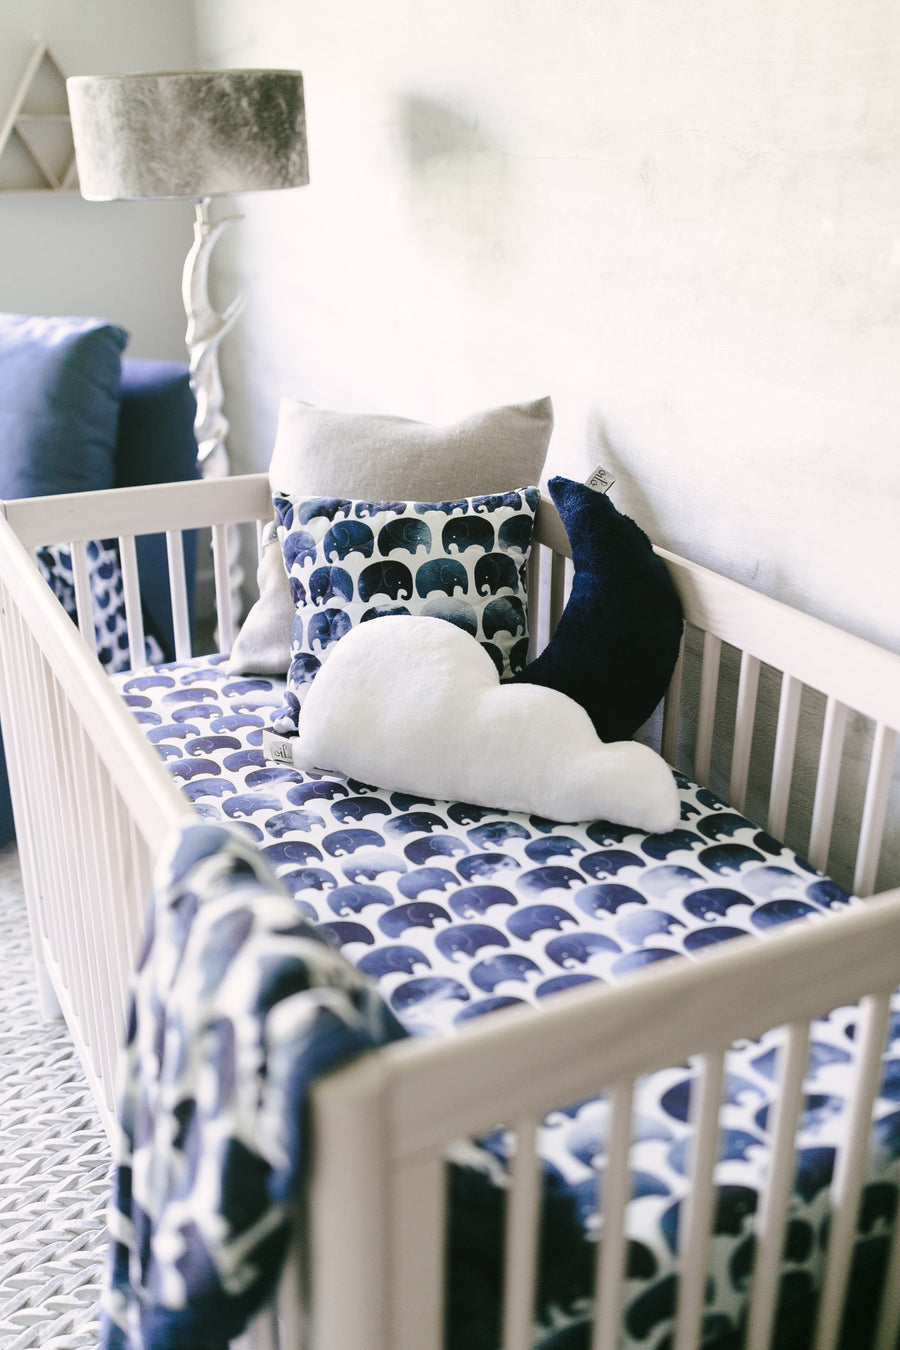 crib with elephant pillow and blanket